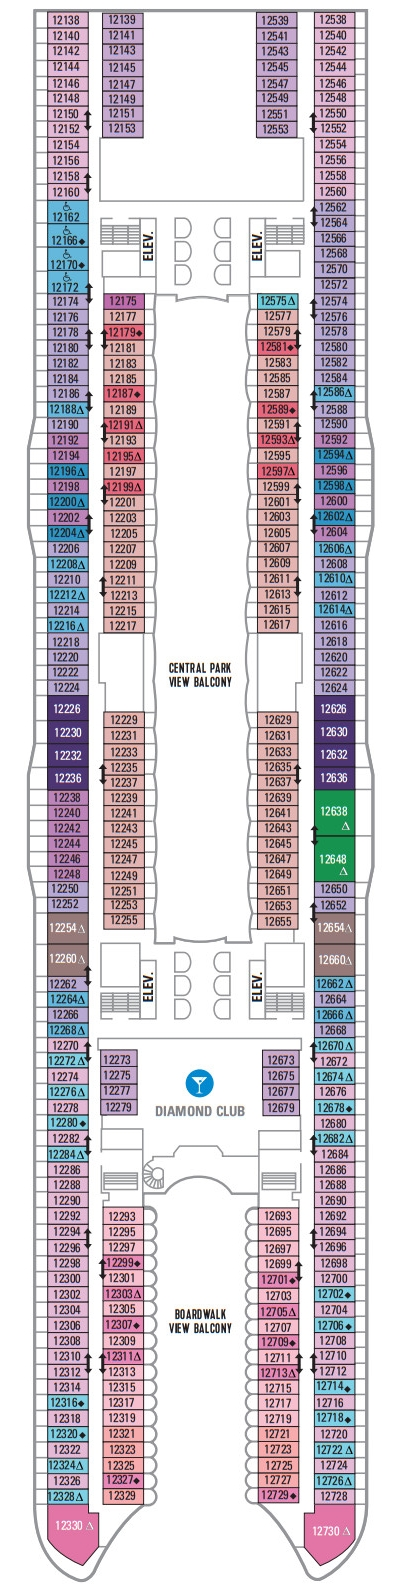 Allure Of The Seas Deck 12 layout